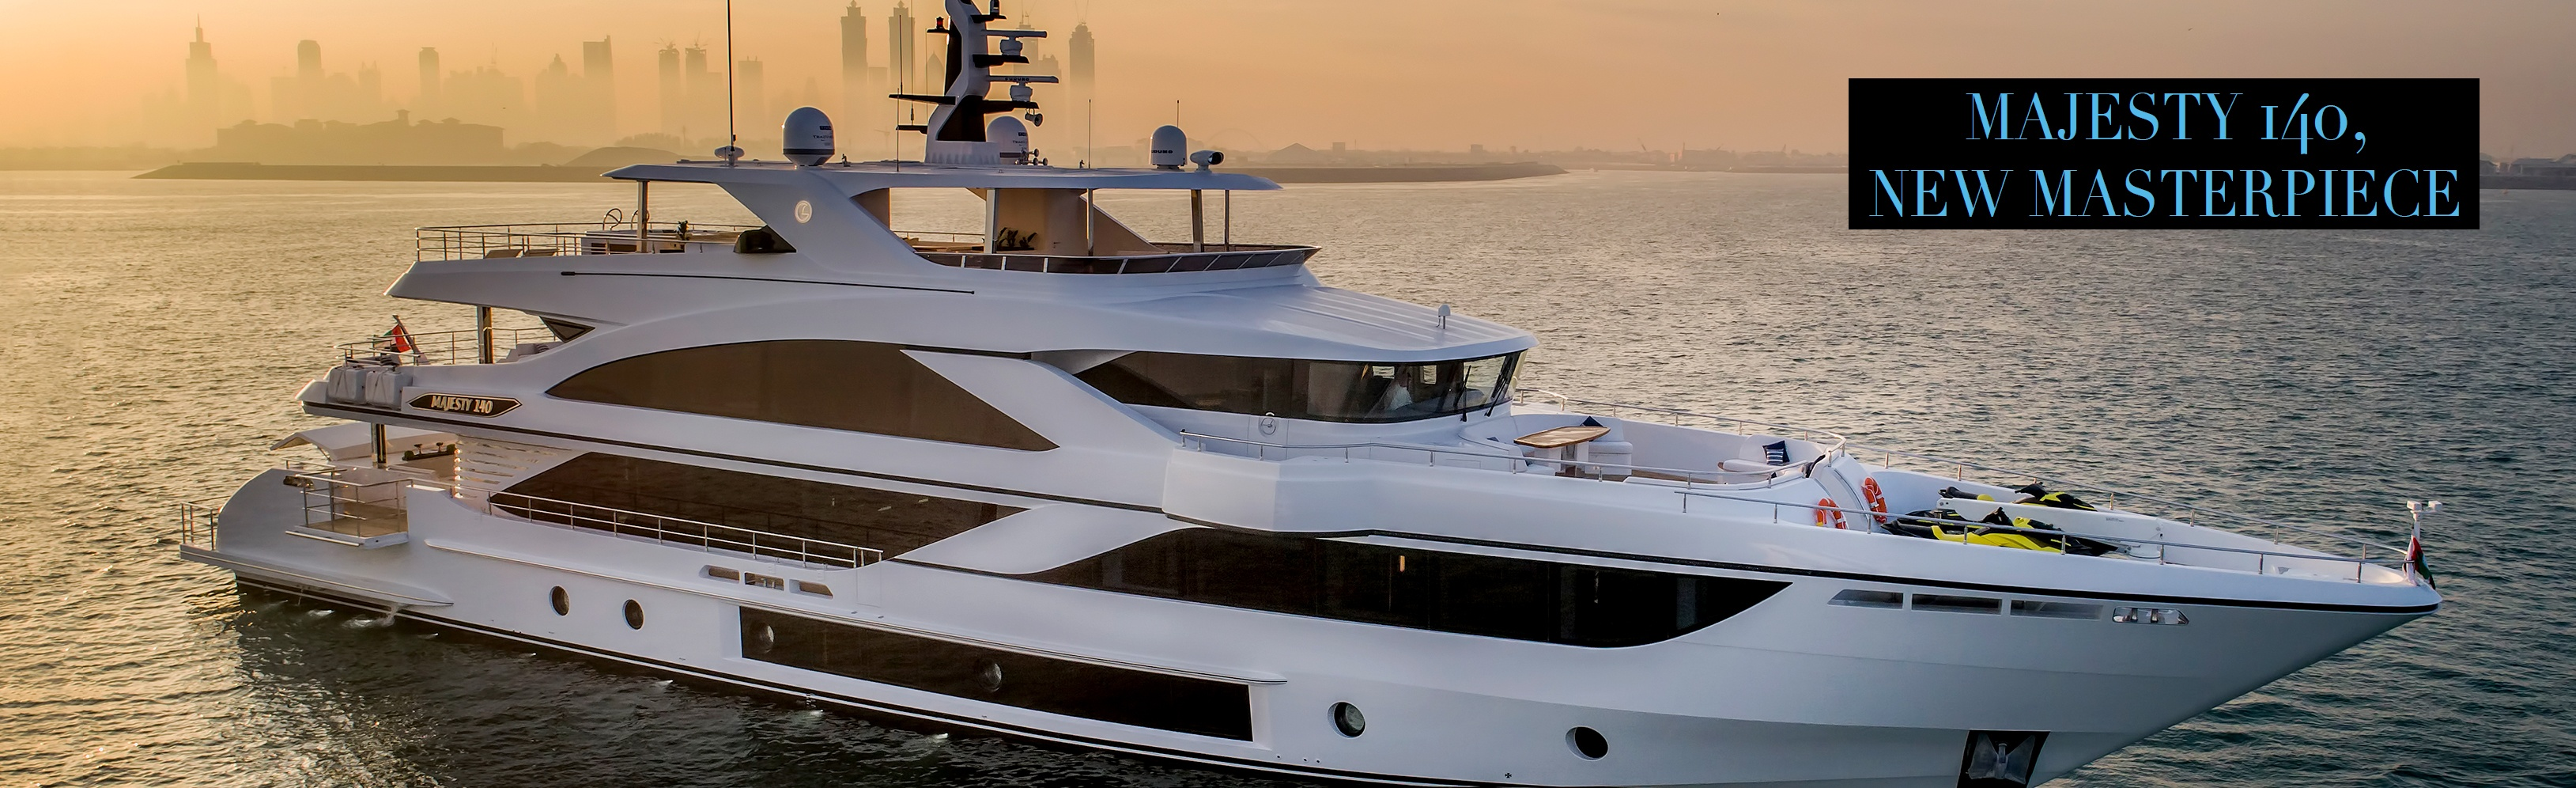 Majesty-140,-Superyacht-One